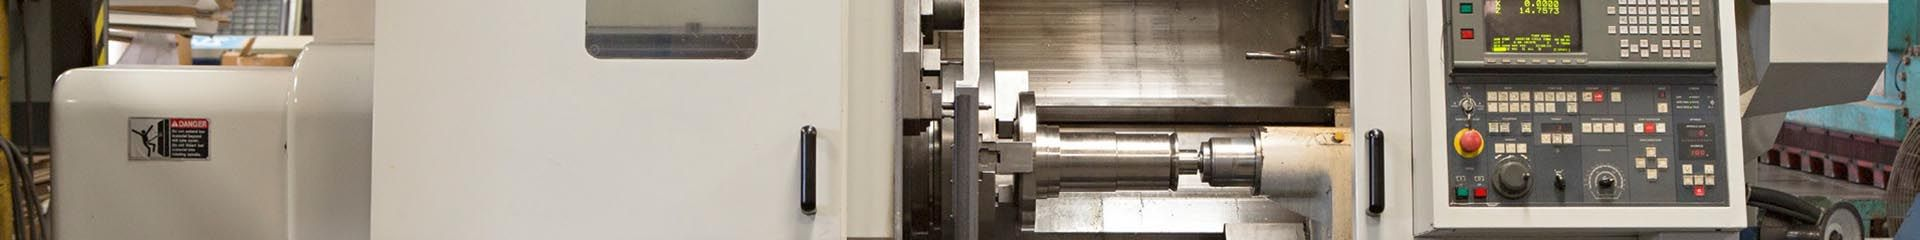 Manufacturing page header image